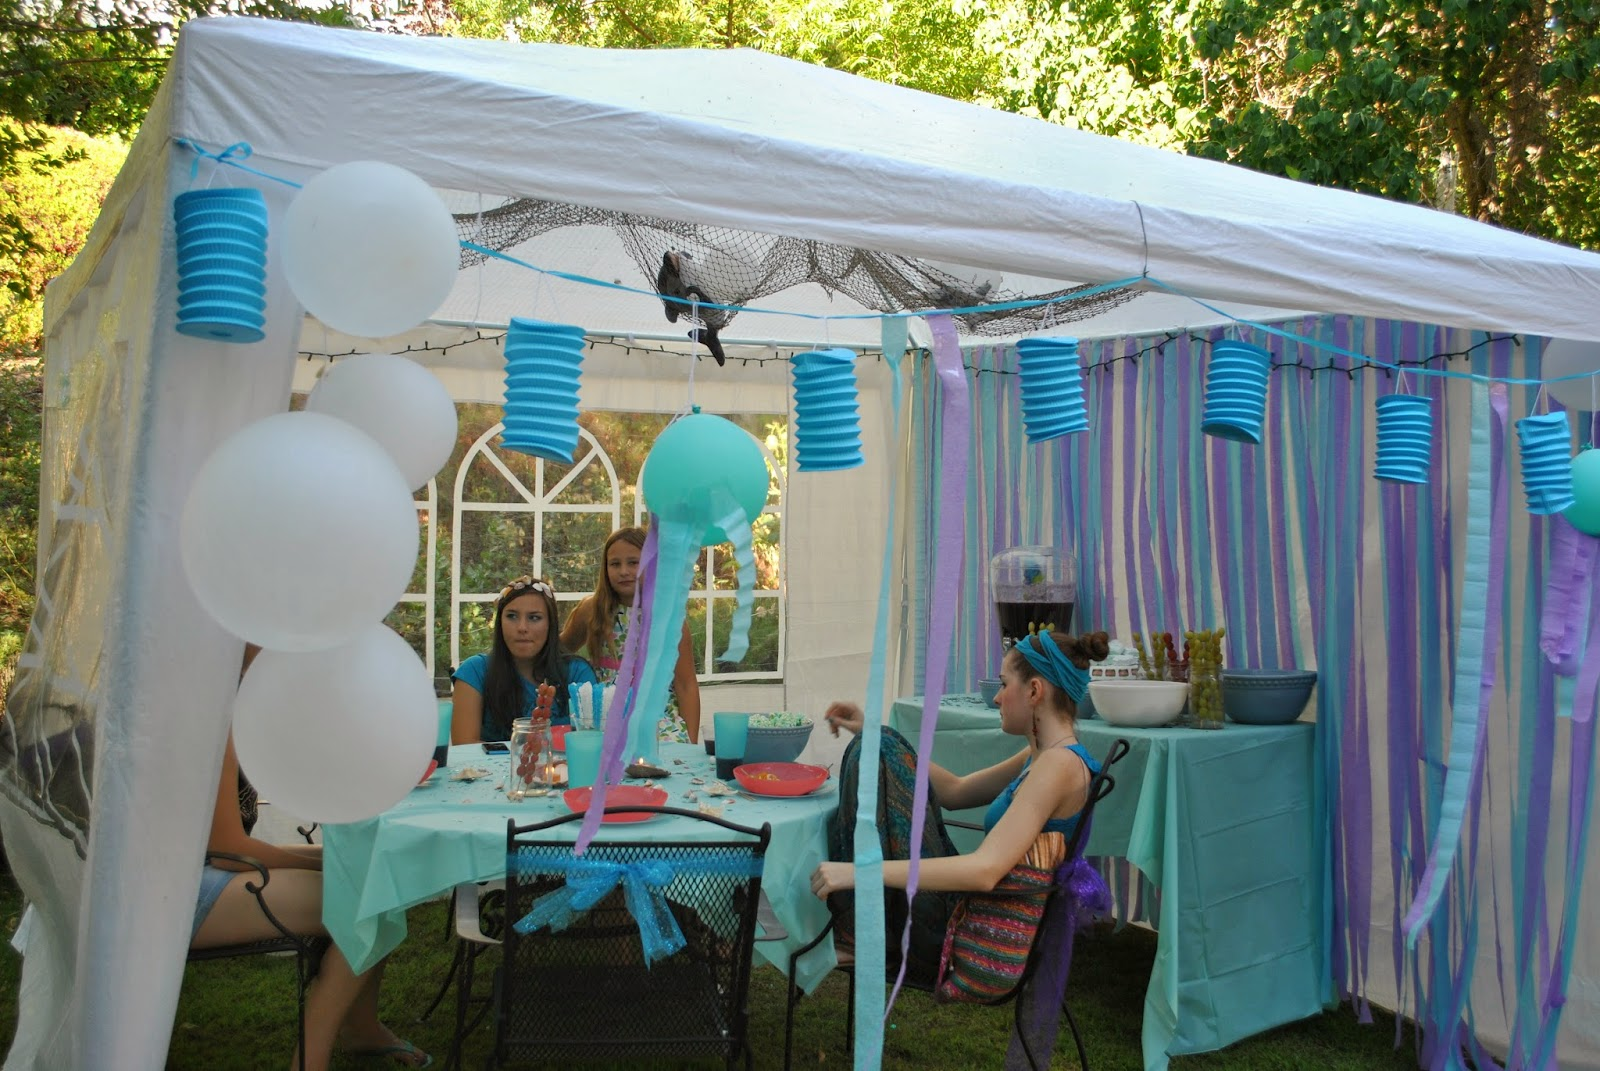 Corrie 39 s creations sophisticated mermaid birthday party for Outdoor party tent decorating ideas